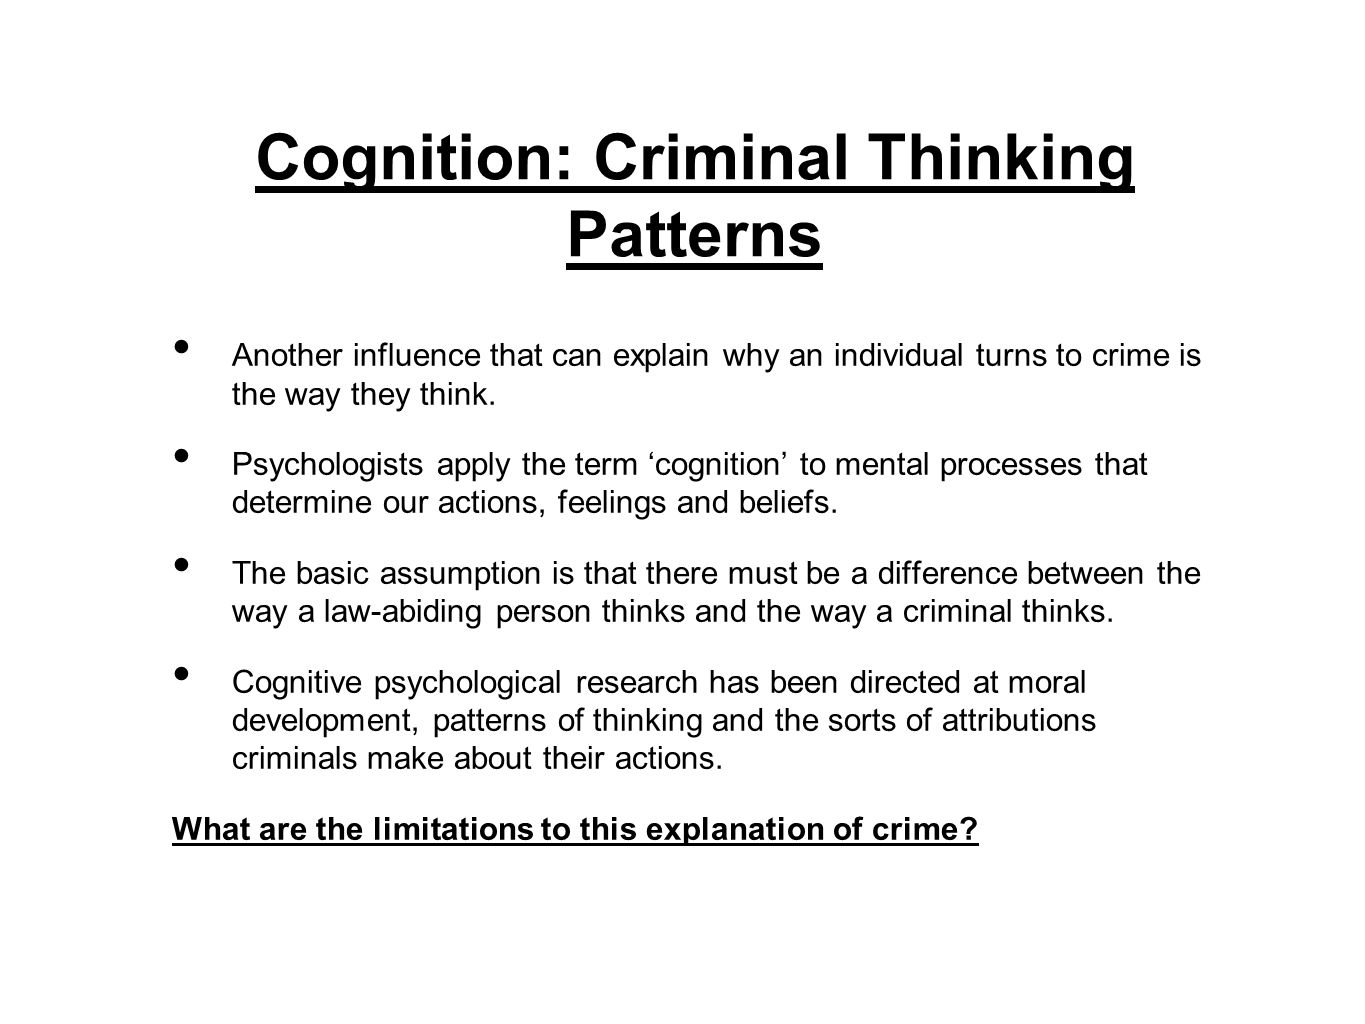 Cognition: Criminal Thinking Patterns